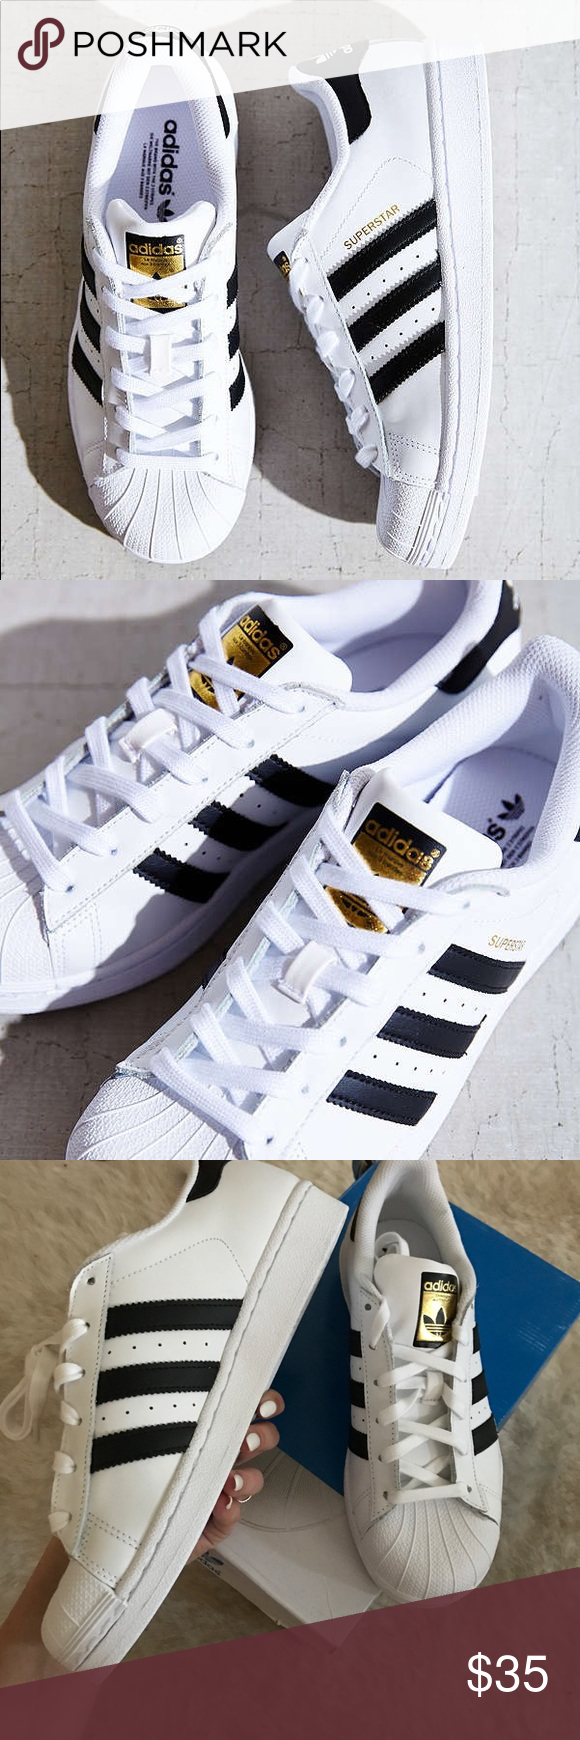 donne adidas superstar 8 nuove di zecca pinterest superstar